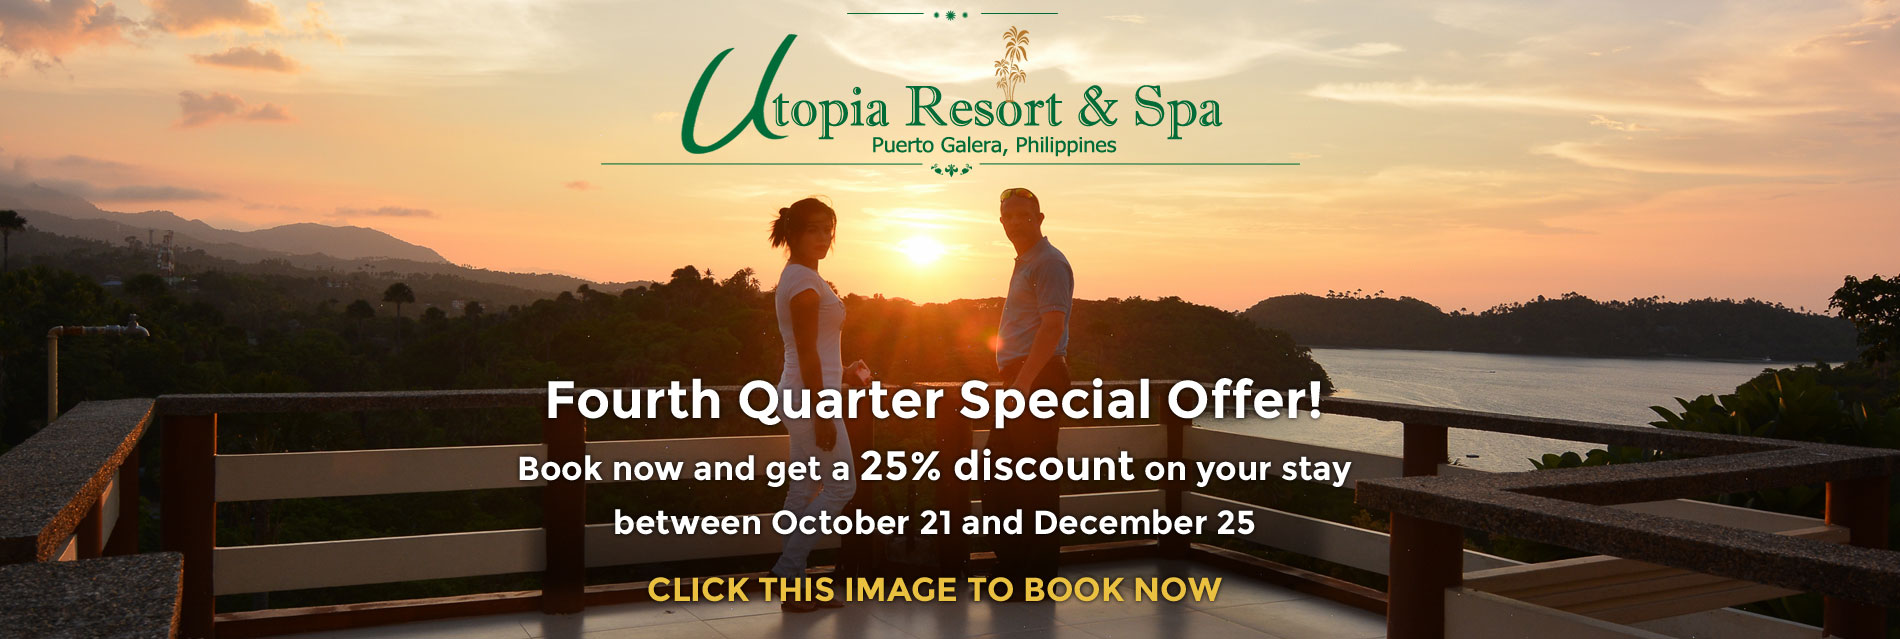 utopia resort puerto galera special offer